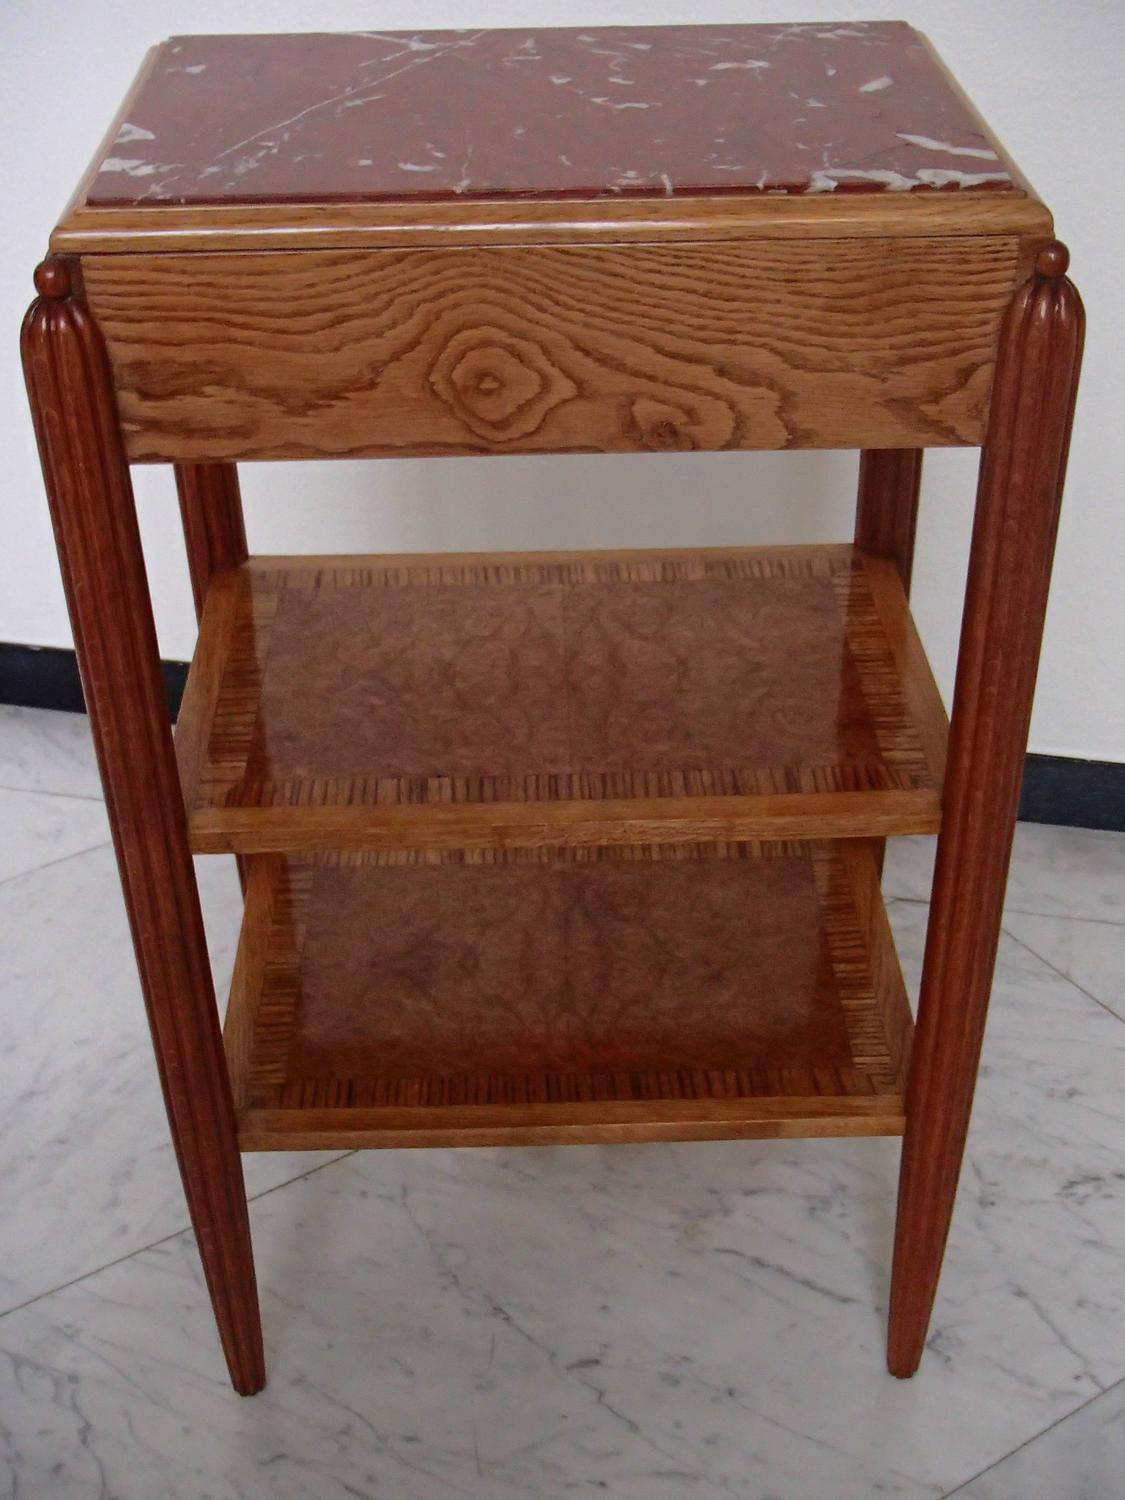 1920 Console High Table Oak Zebra Wood Maple Eye Marble